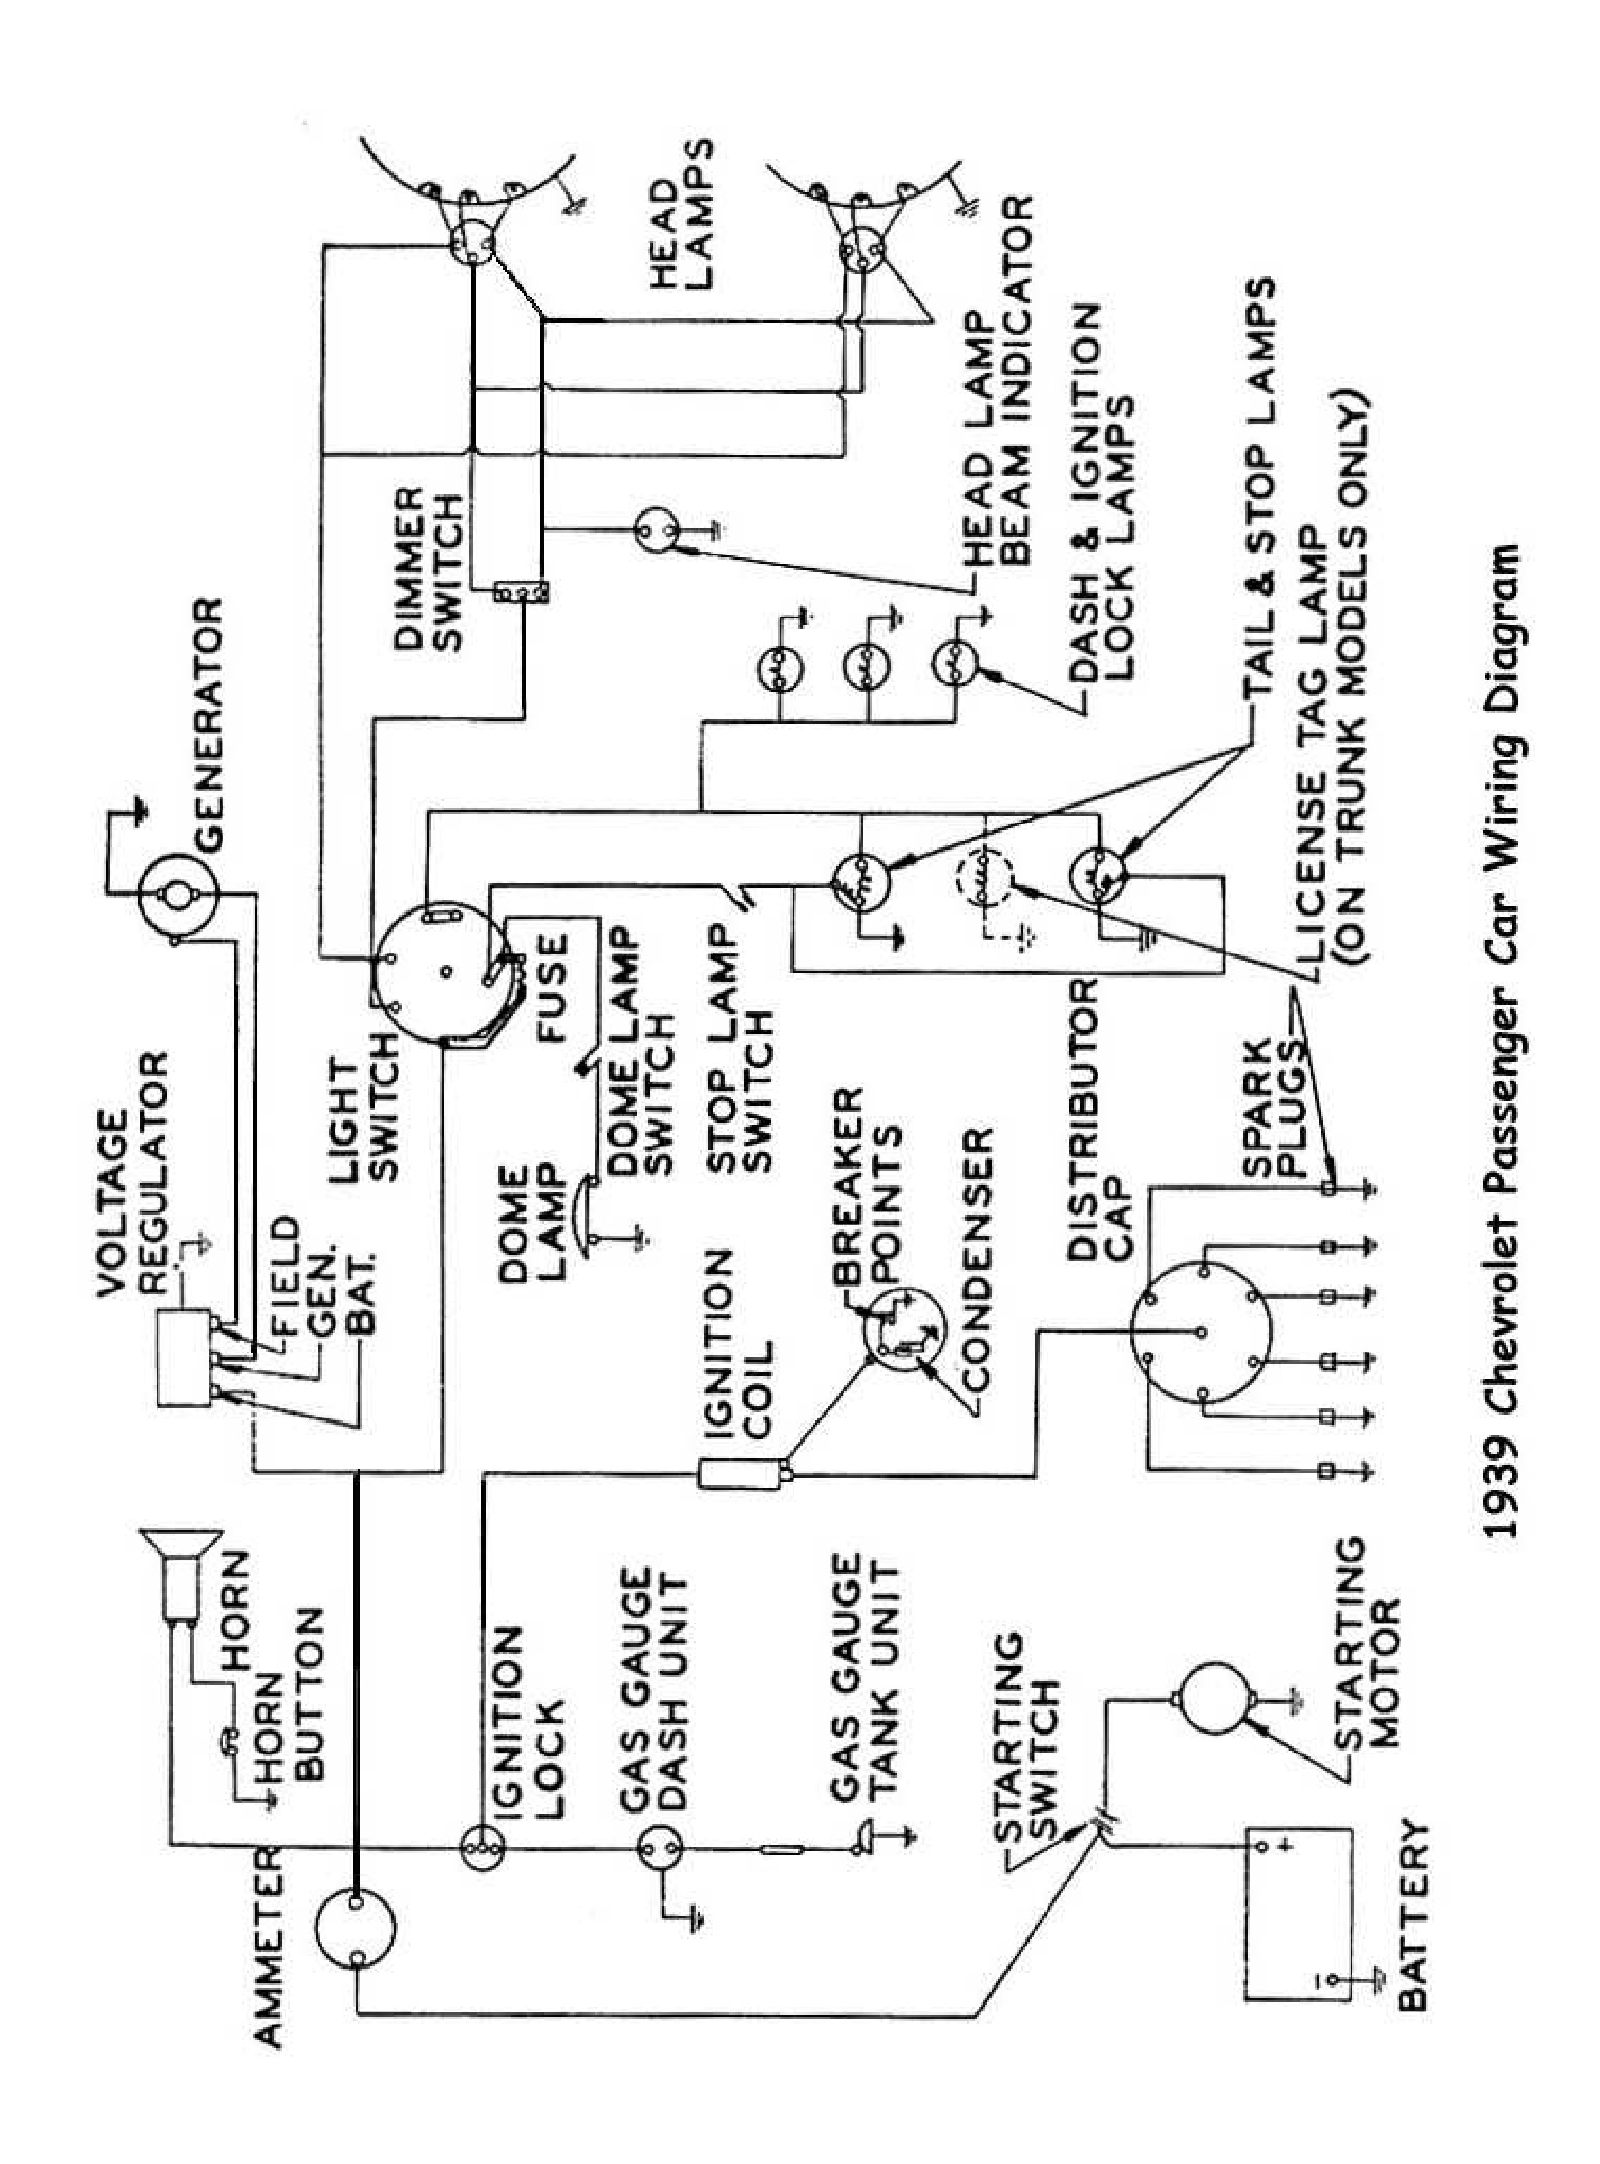 chevy wiring diagrams Electric Contactors Wiring Diagram 1939 passenger car wiring